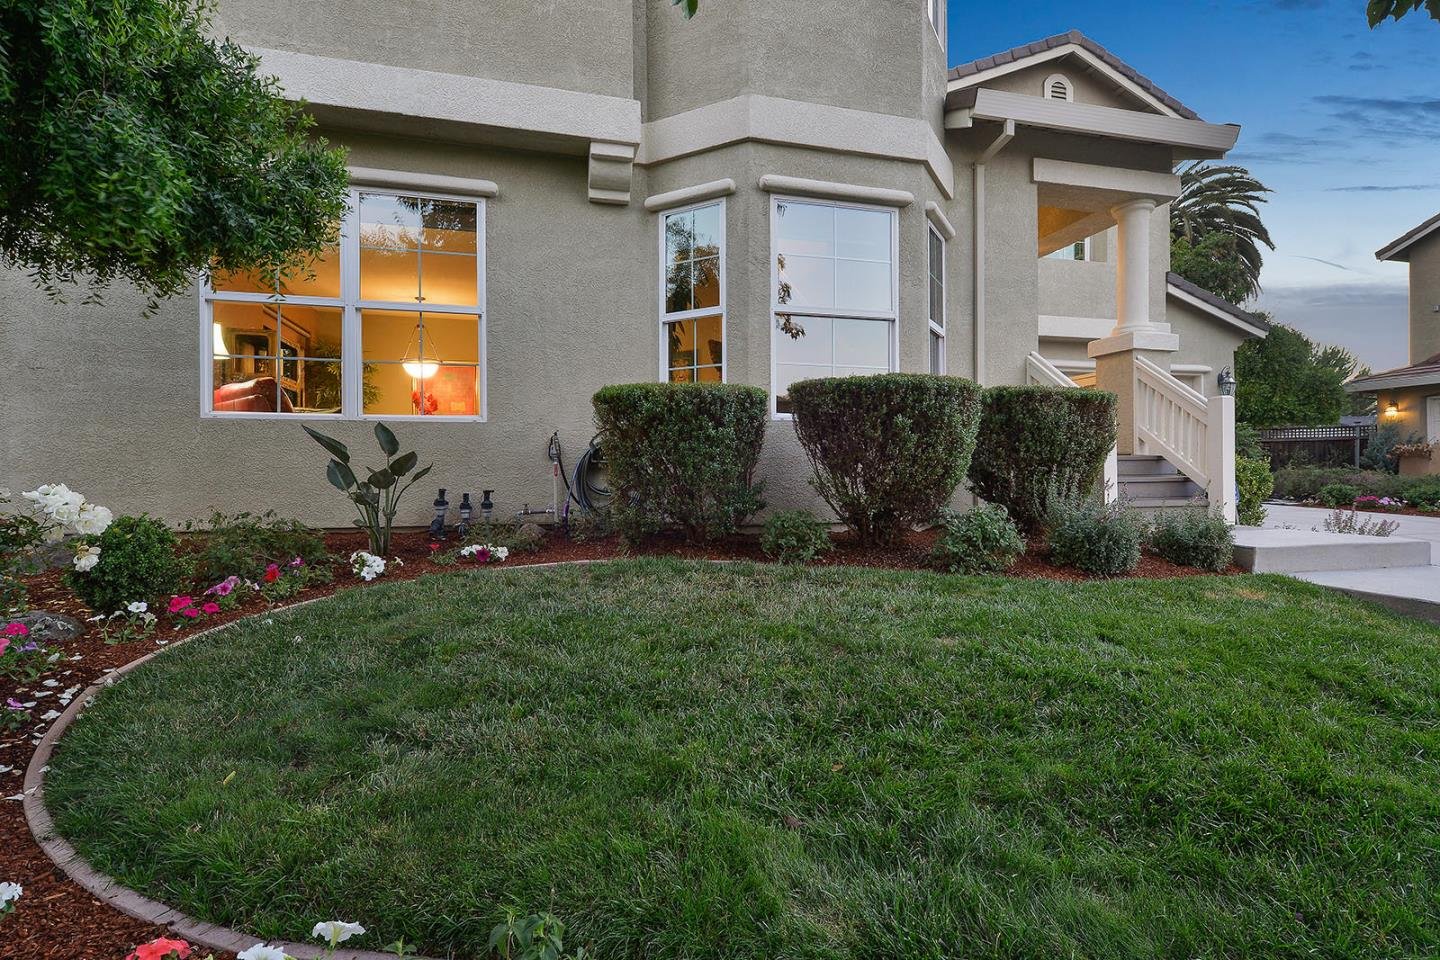 Additional photo for property listing at 12 Shorebreeze Court  East Palo Alto, Kalifornien 94303 Vereinigte Staaten